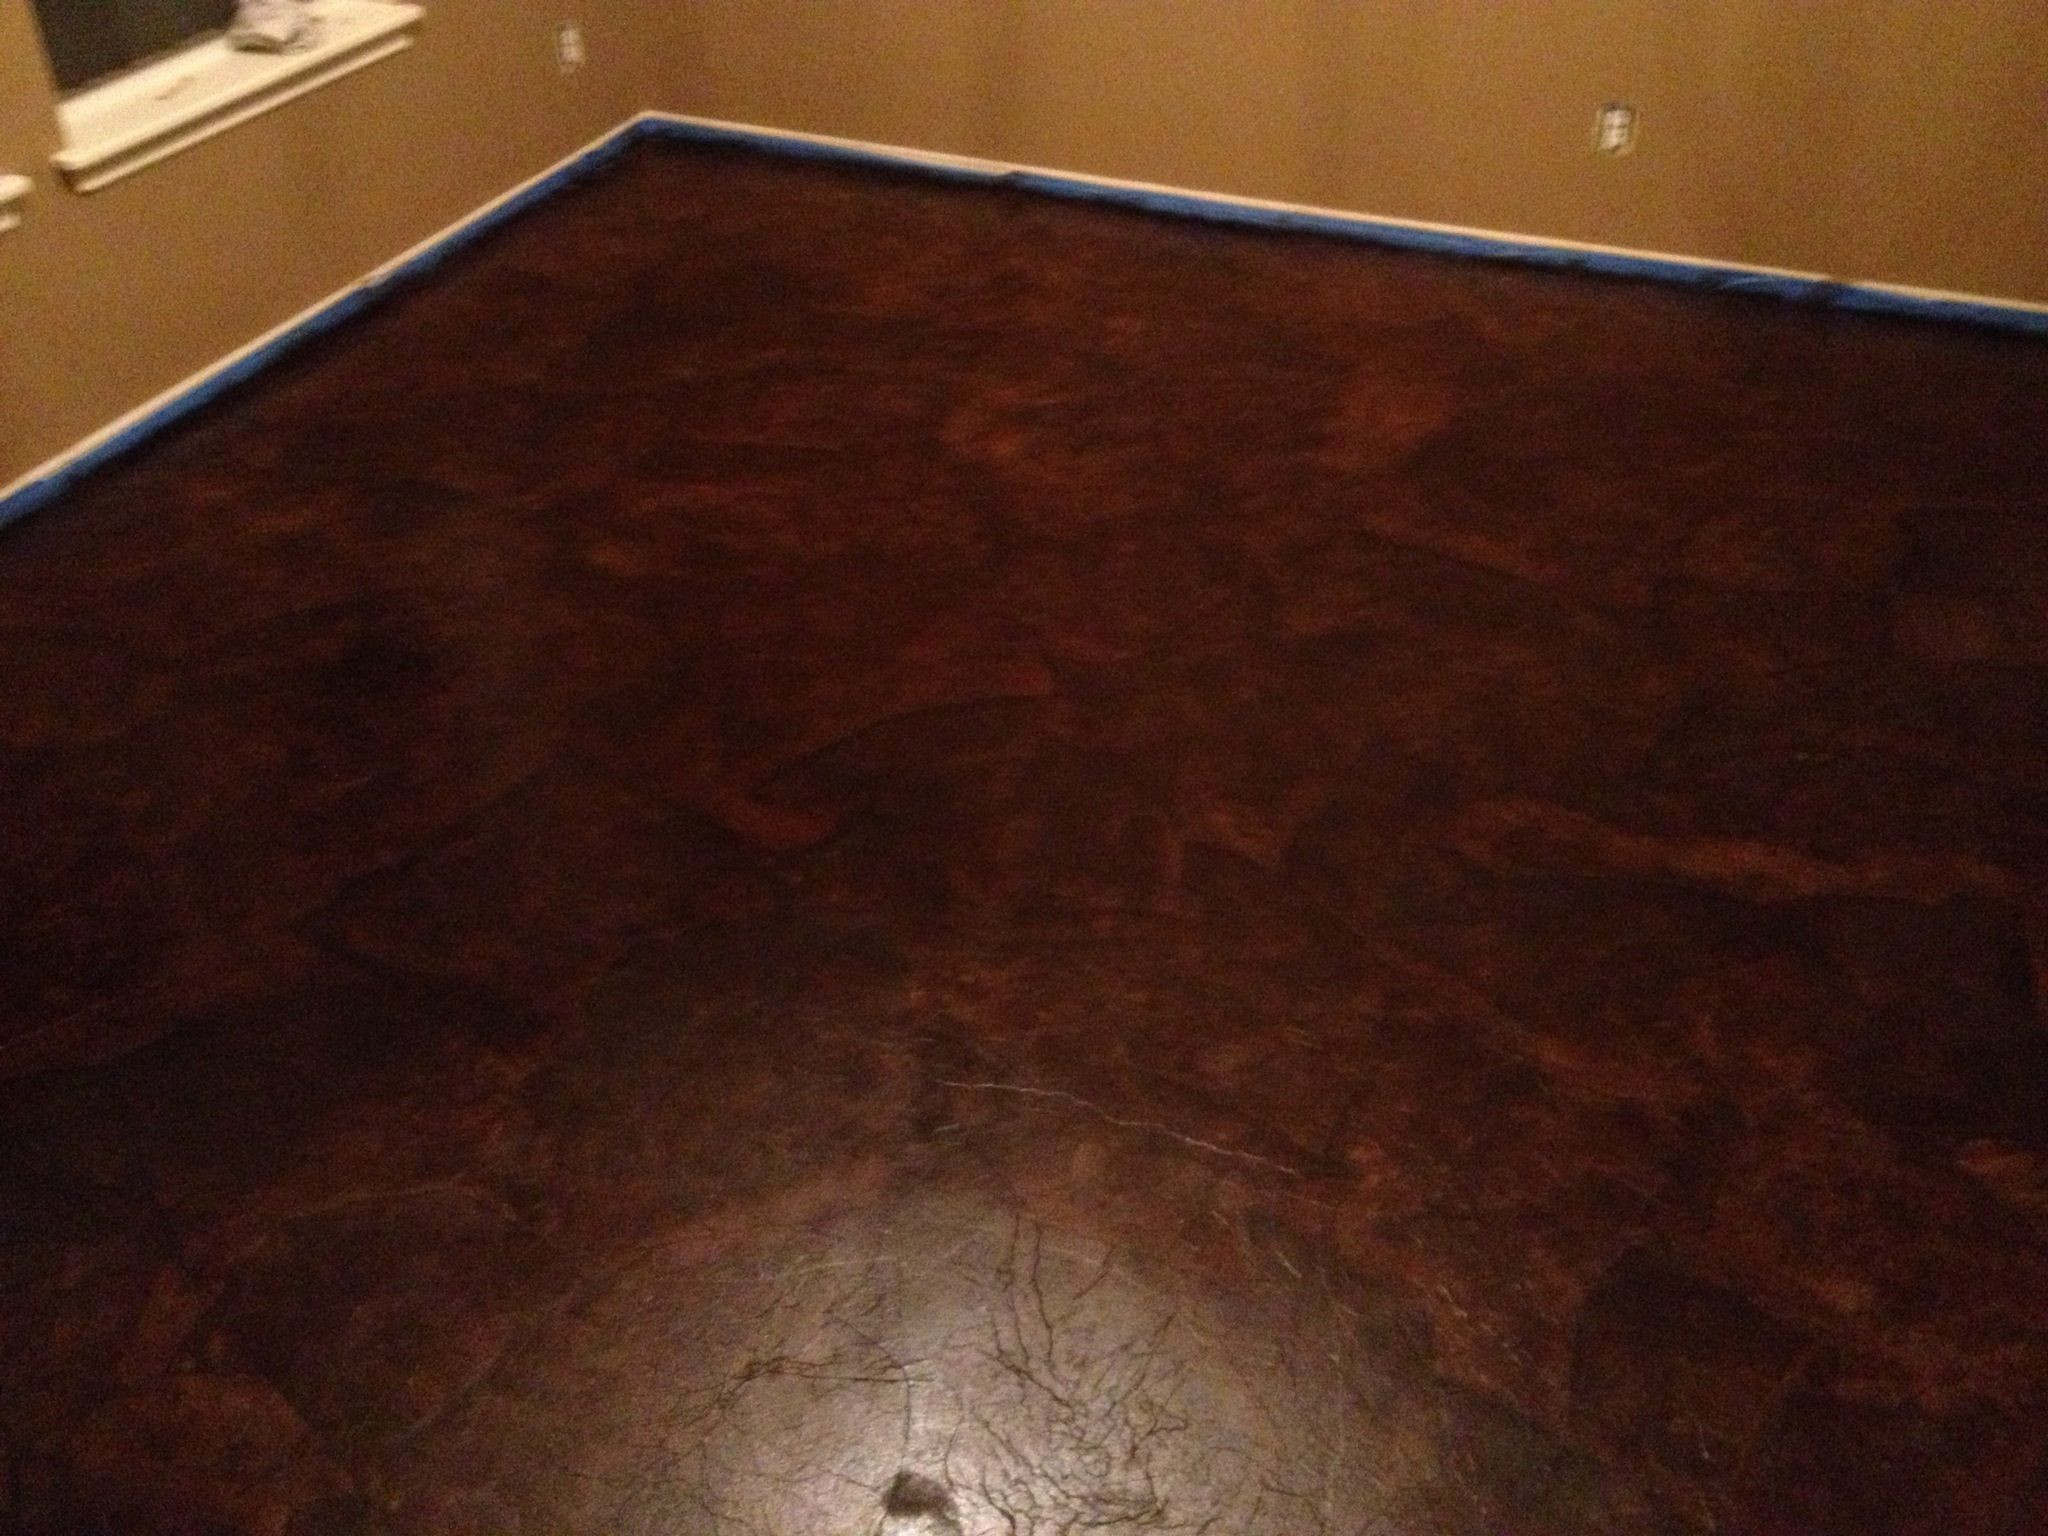 diy hardwood floor on concrete of diy paper bag floors that look like stained concrete diy brown within brown paper bag stained floors amazing project excellent instructions on how to complete the project